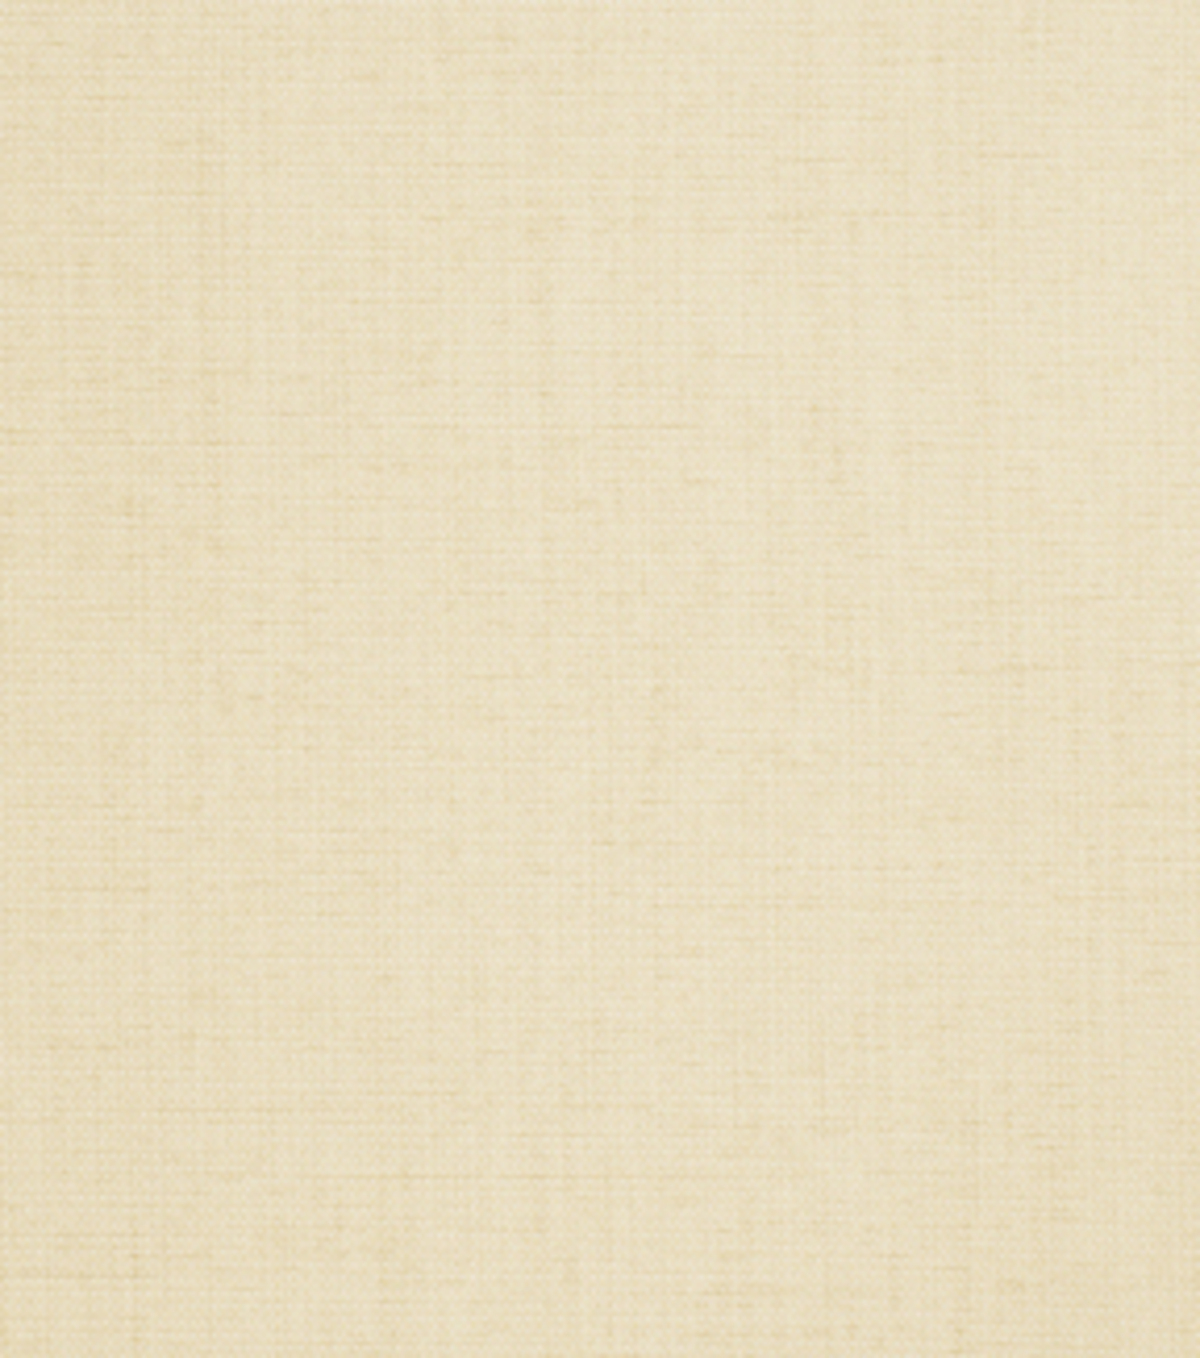 Home Decor 8\u0022x8\u0022 Fabric Swatch-Eaton Square Ring Toss Ivory